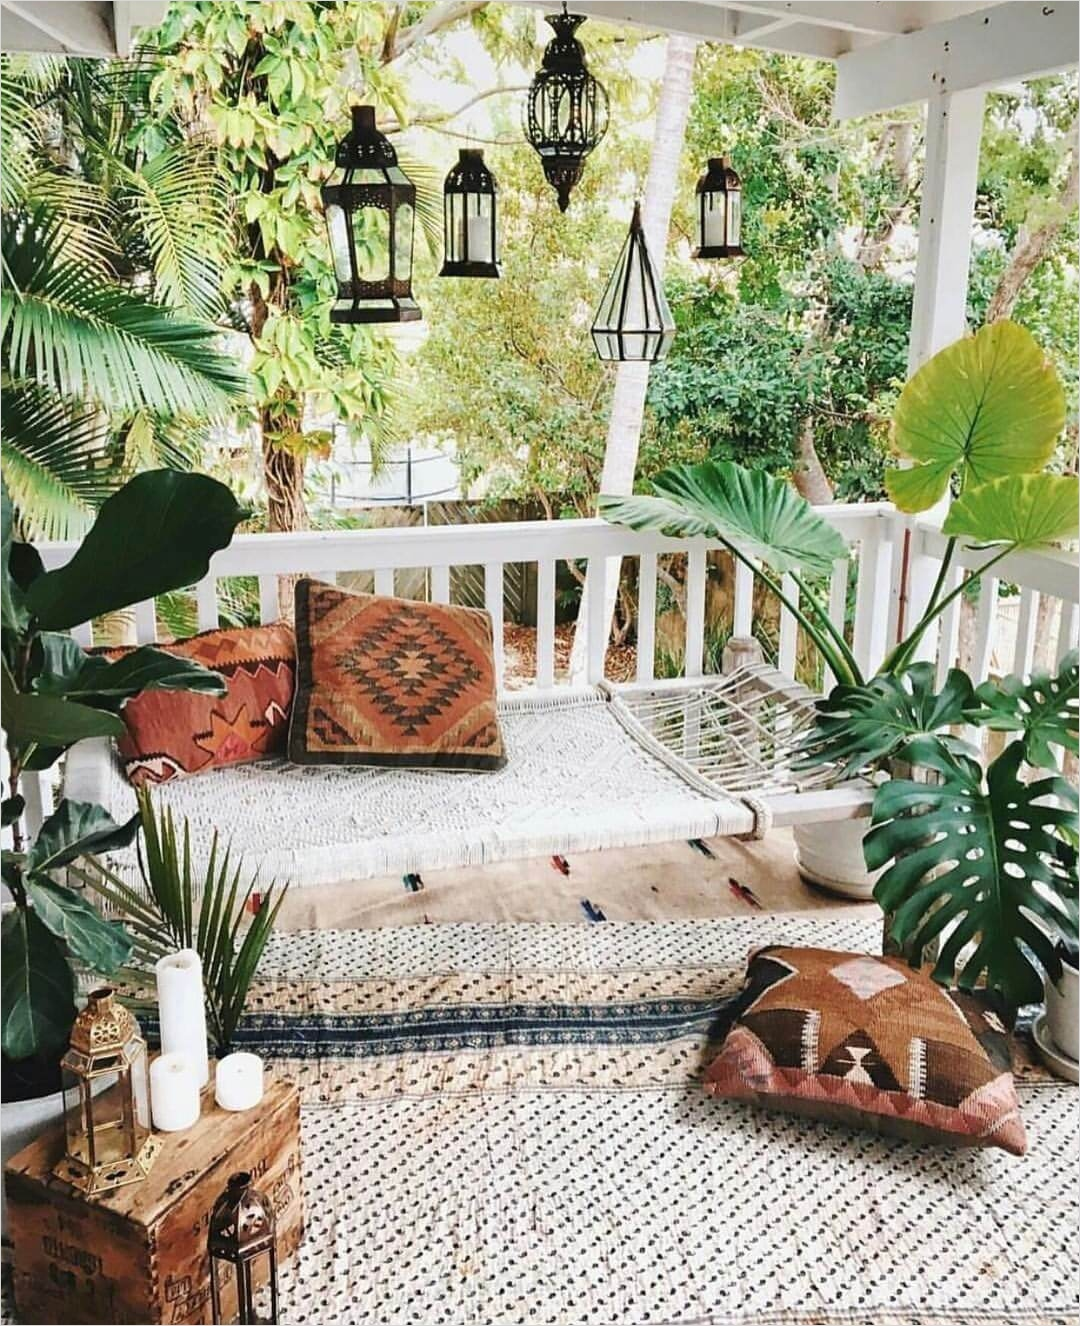 40 Beautiful Summer Porch Decorating Ideas 86 42 Best Summer Porch Decor Ideas and Designs for 2017 3